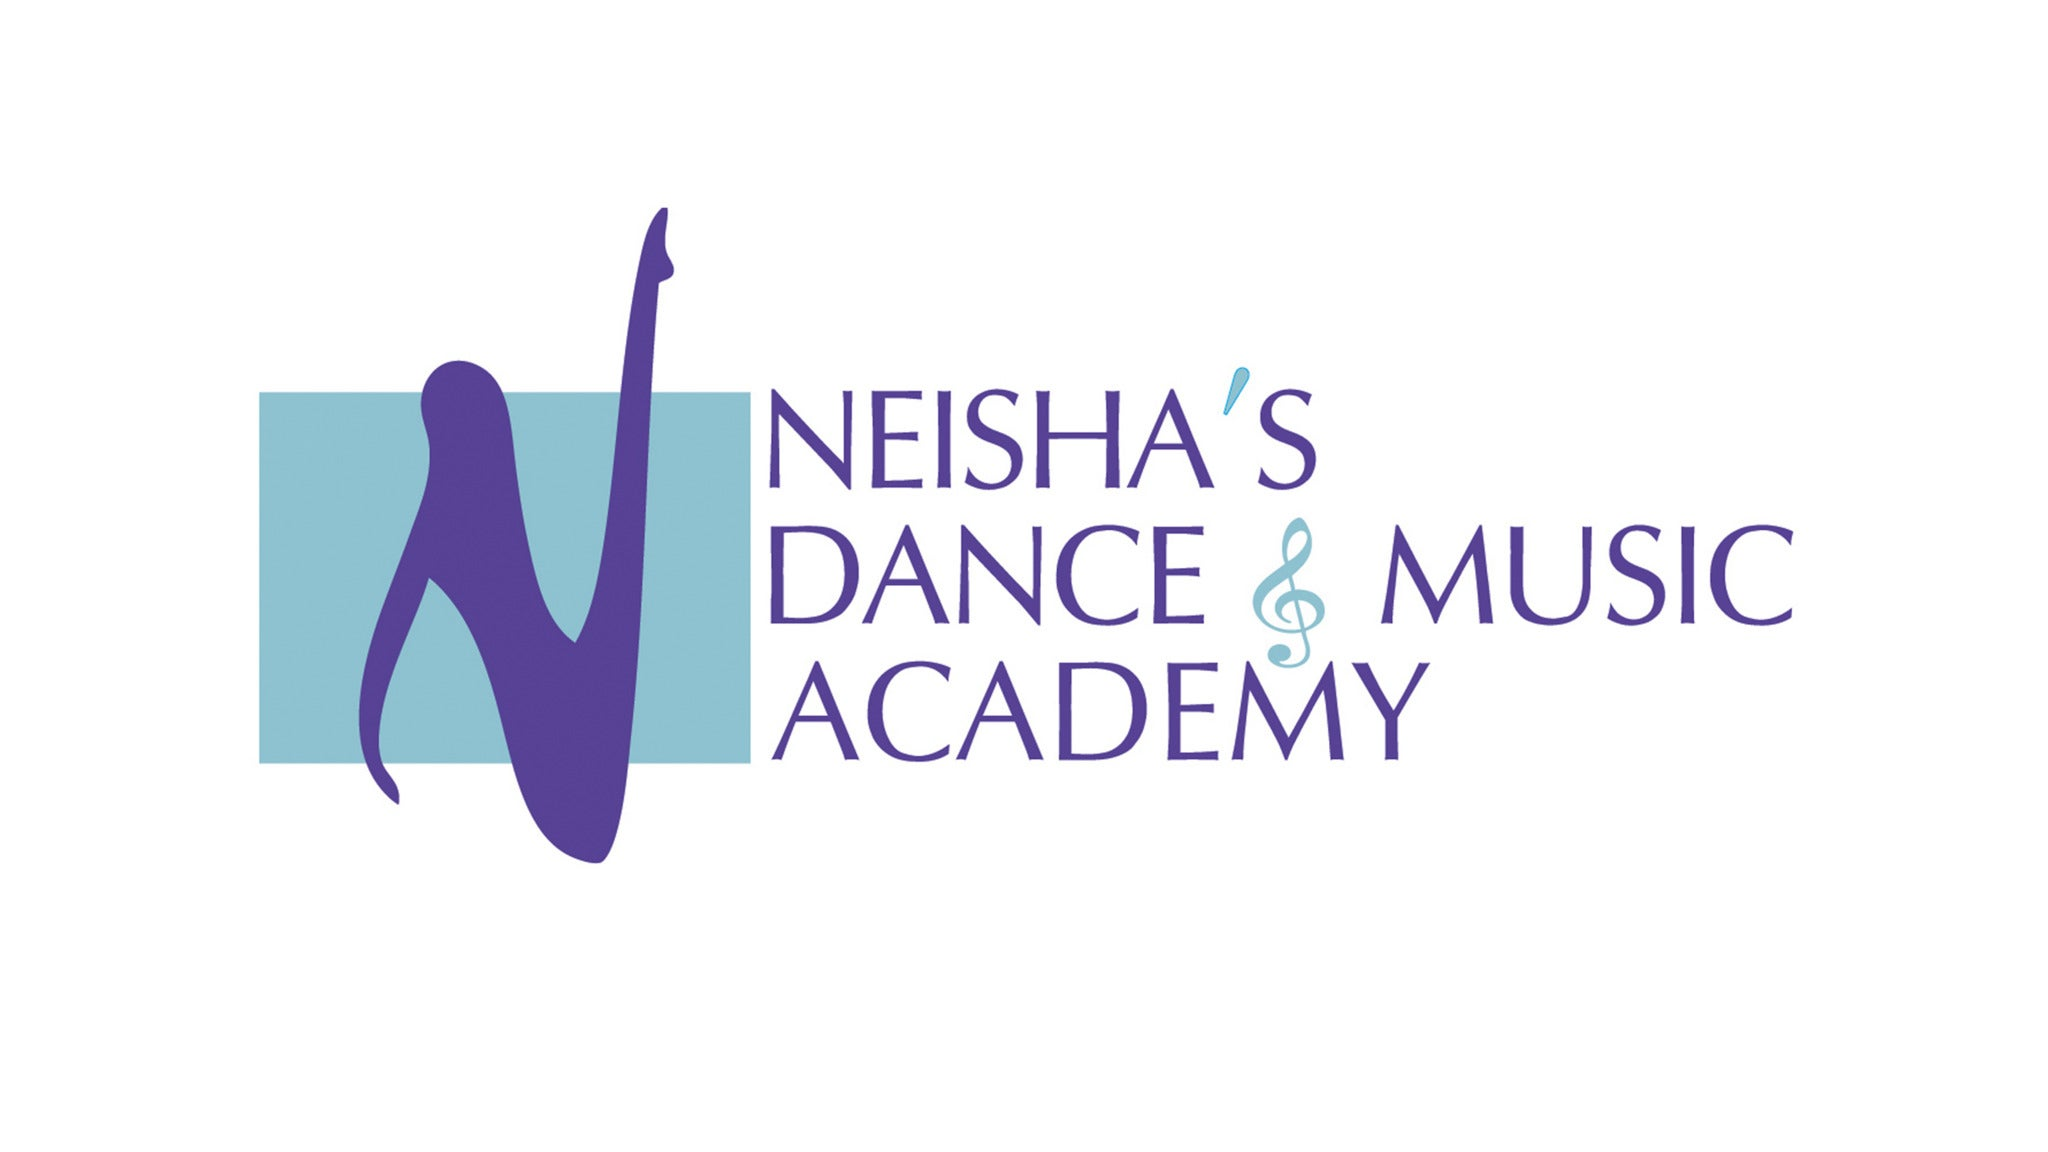 Neisha's Dance & Music Academy: We Are The World